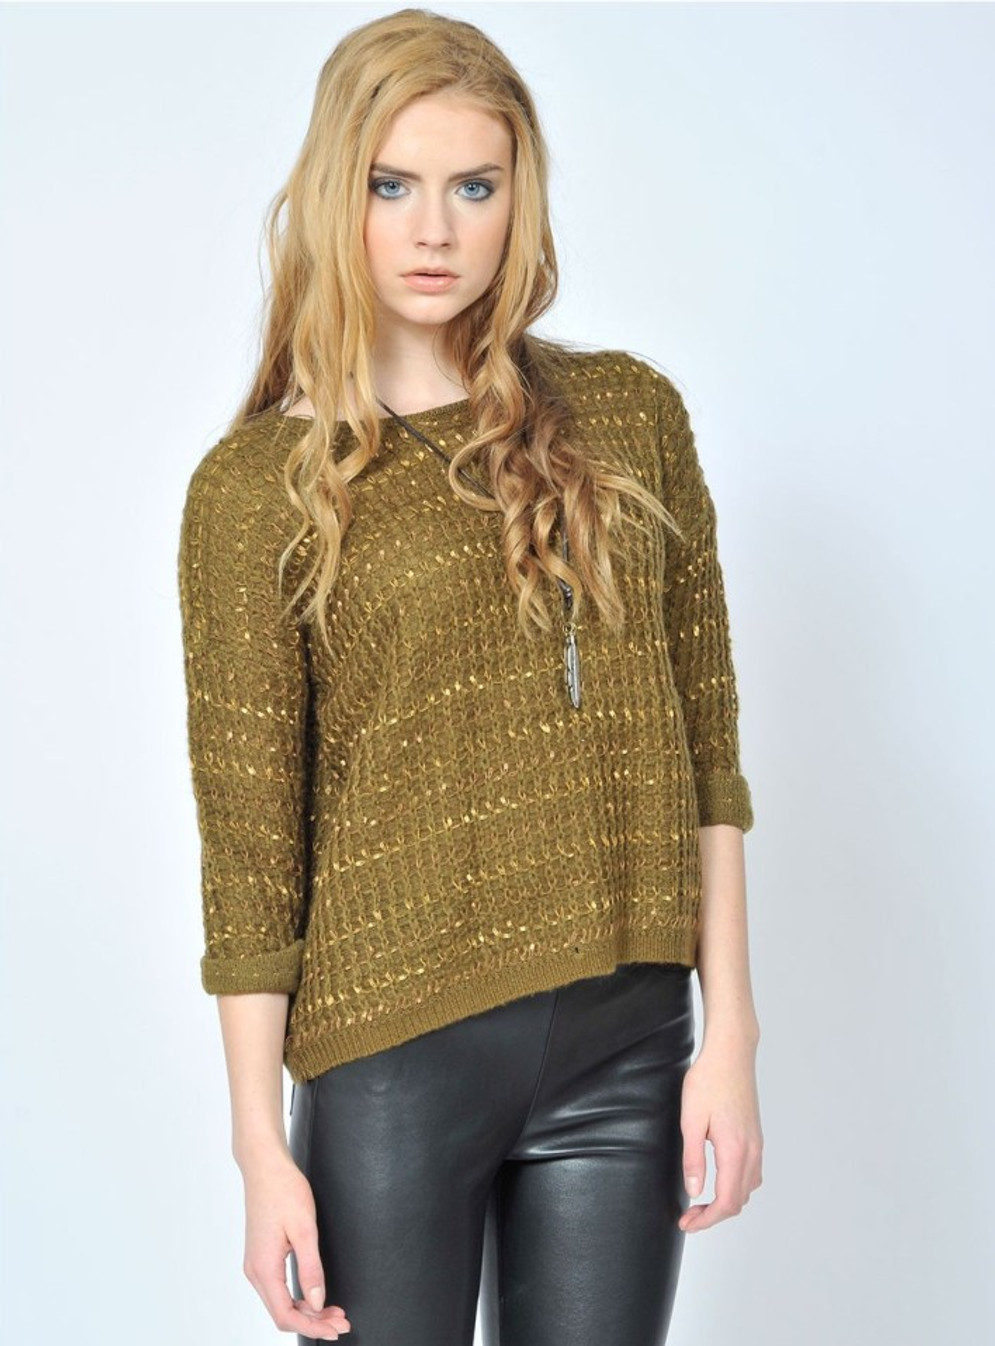 all-eyes-on-me-olive sweater Pink Martini